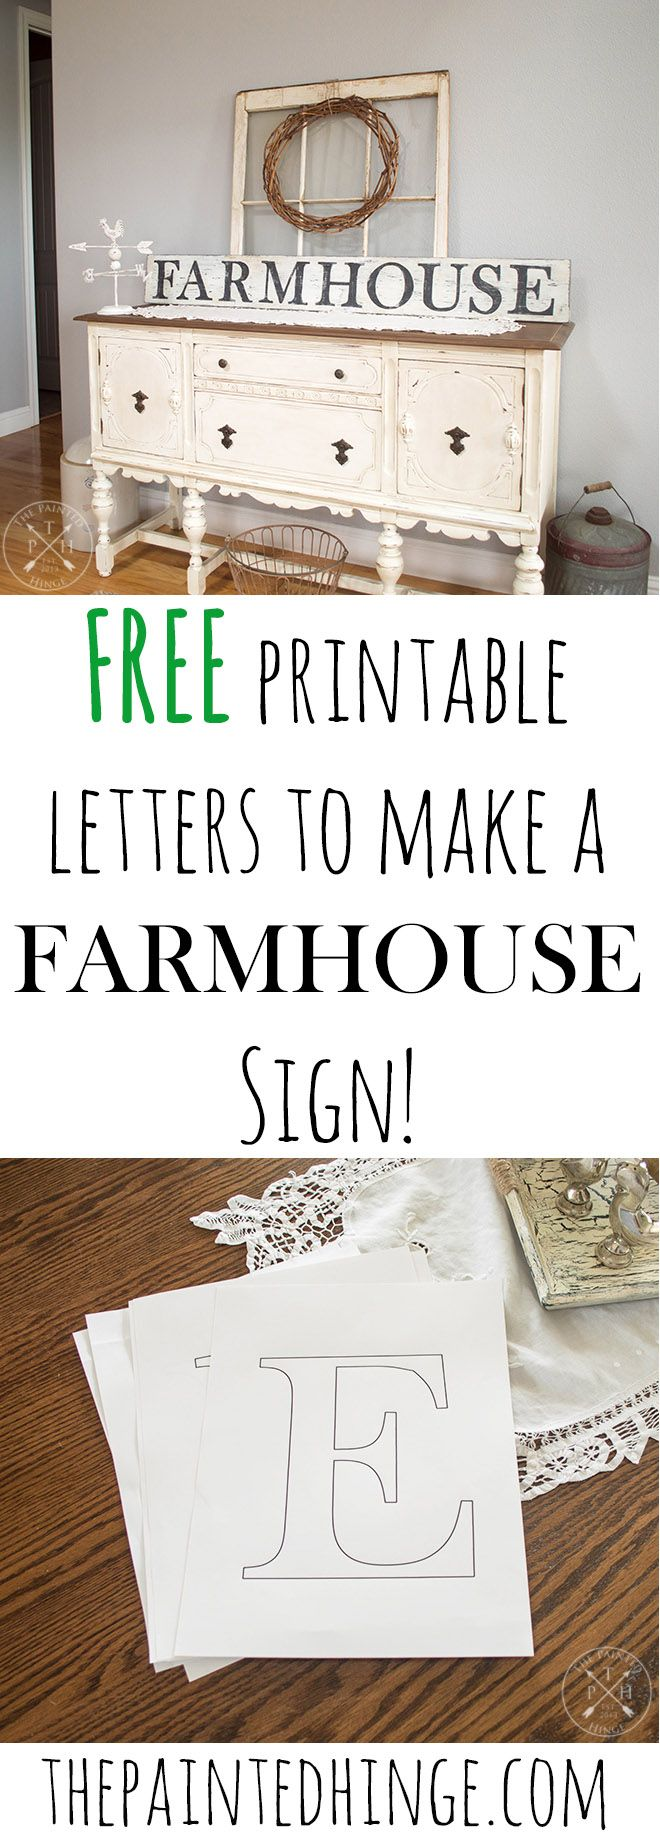 Don't have stencils or a stencil cutting machine? No problem! Just use these free printable letters to make a farmhouse sign!